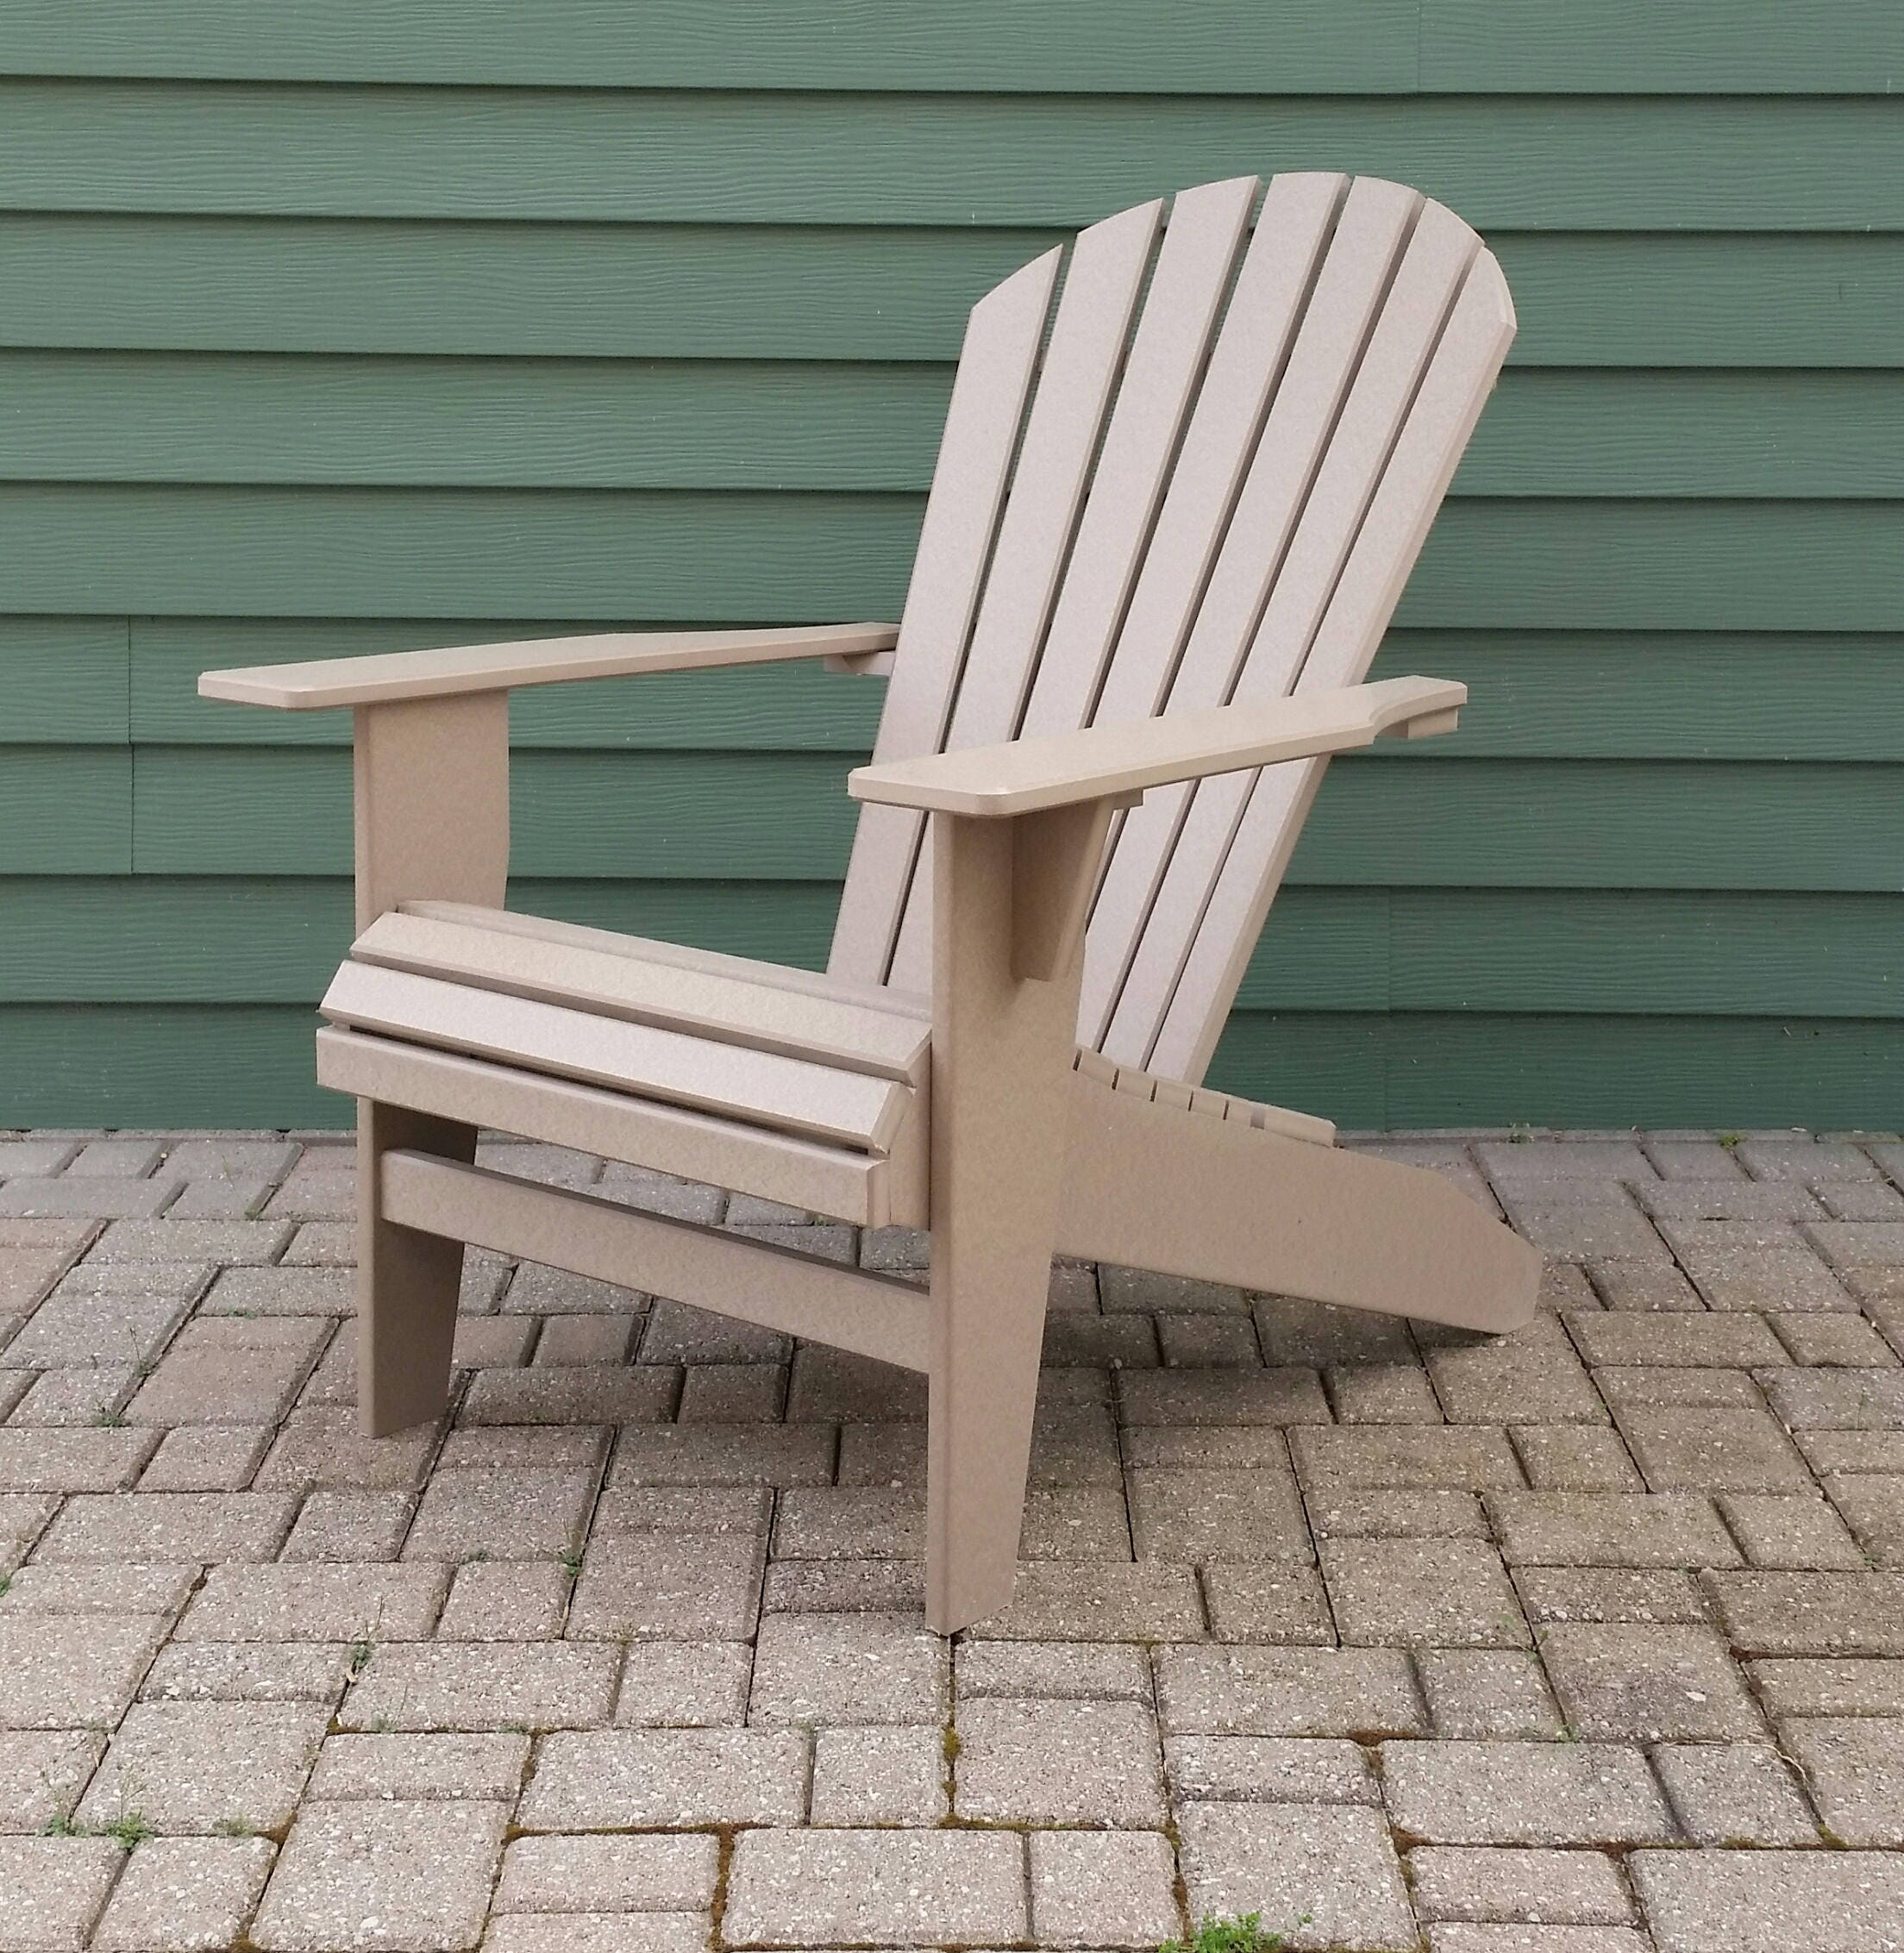 Chaise adirondack de poly bois coquillage etsy - Chaise adirondack france ...